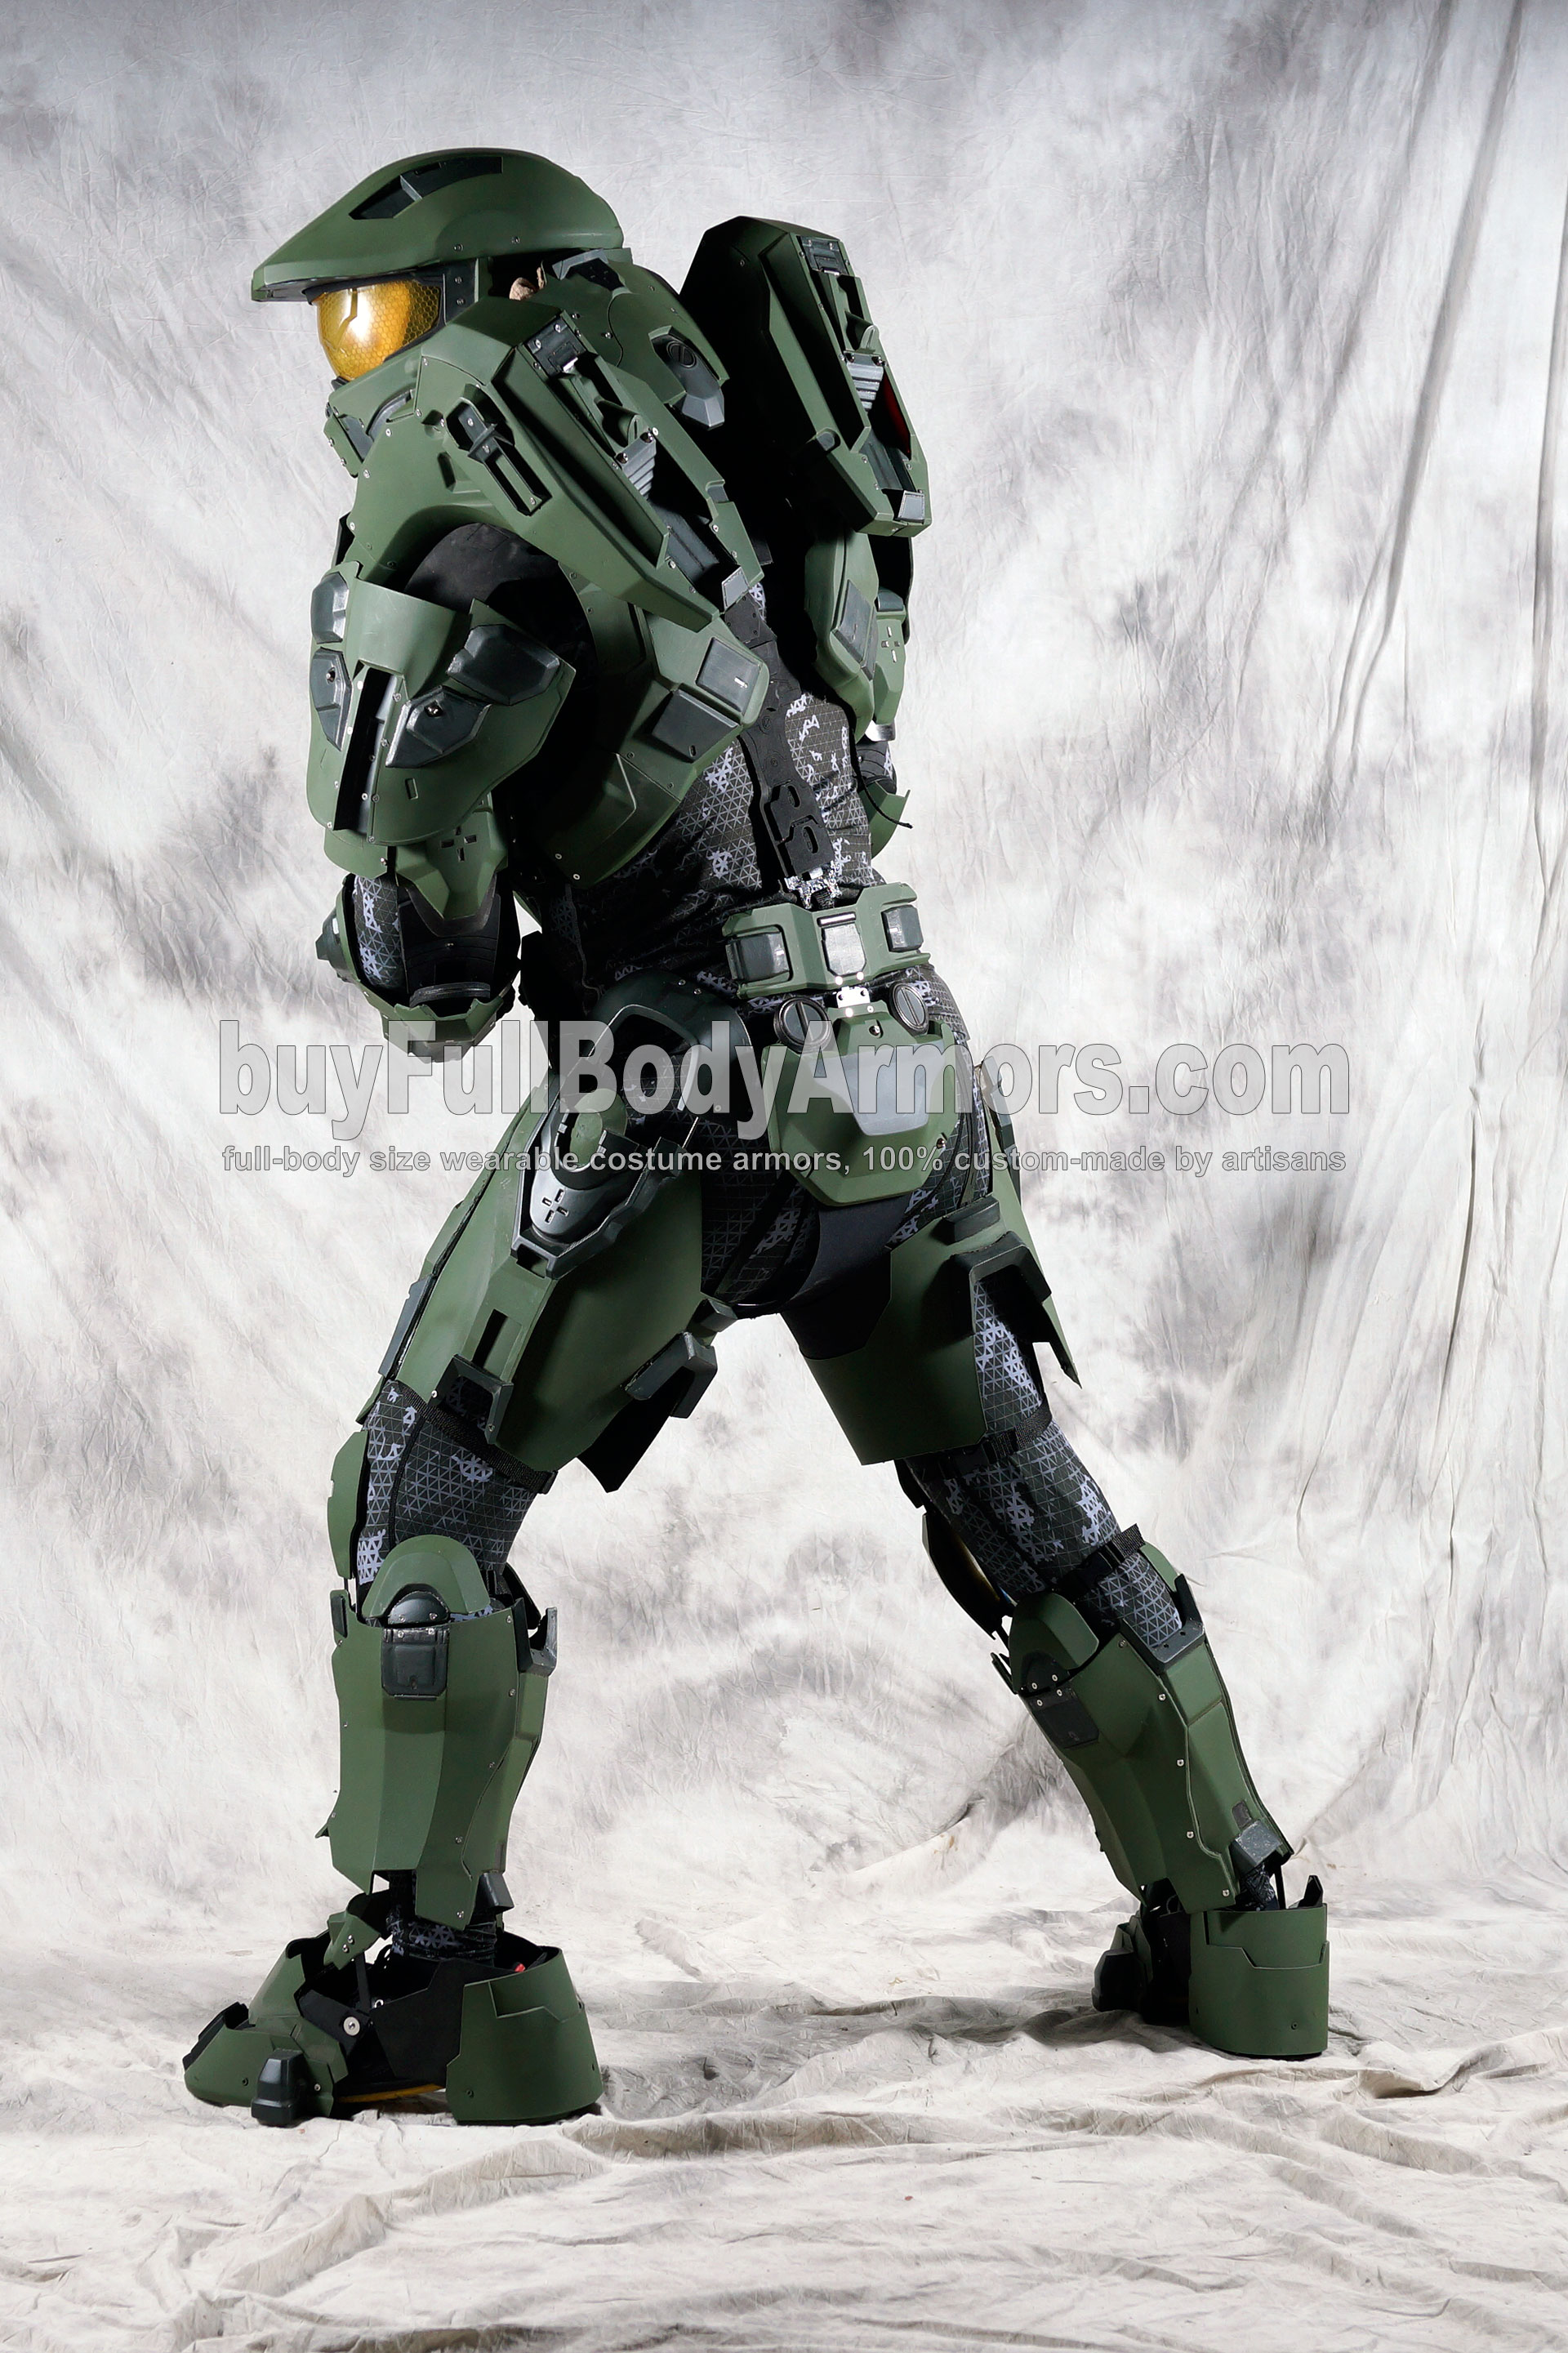 Halo 5 Master Chief Armor Suit Costume 4 & Buy Iron Man suit Halo Master Chief armor Batman costume Star ...